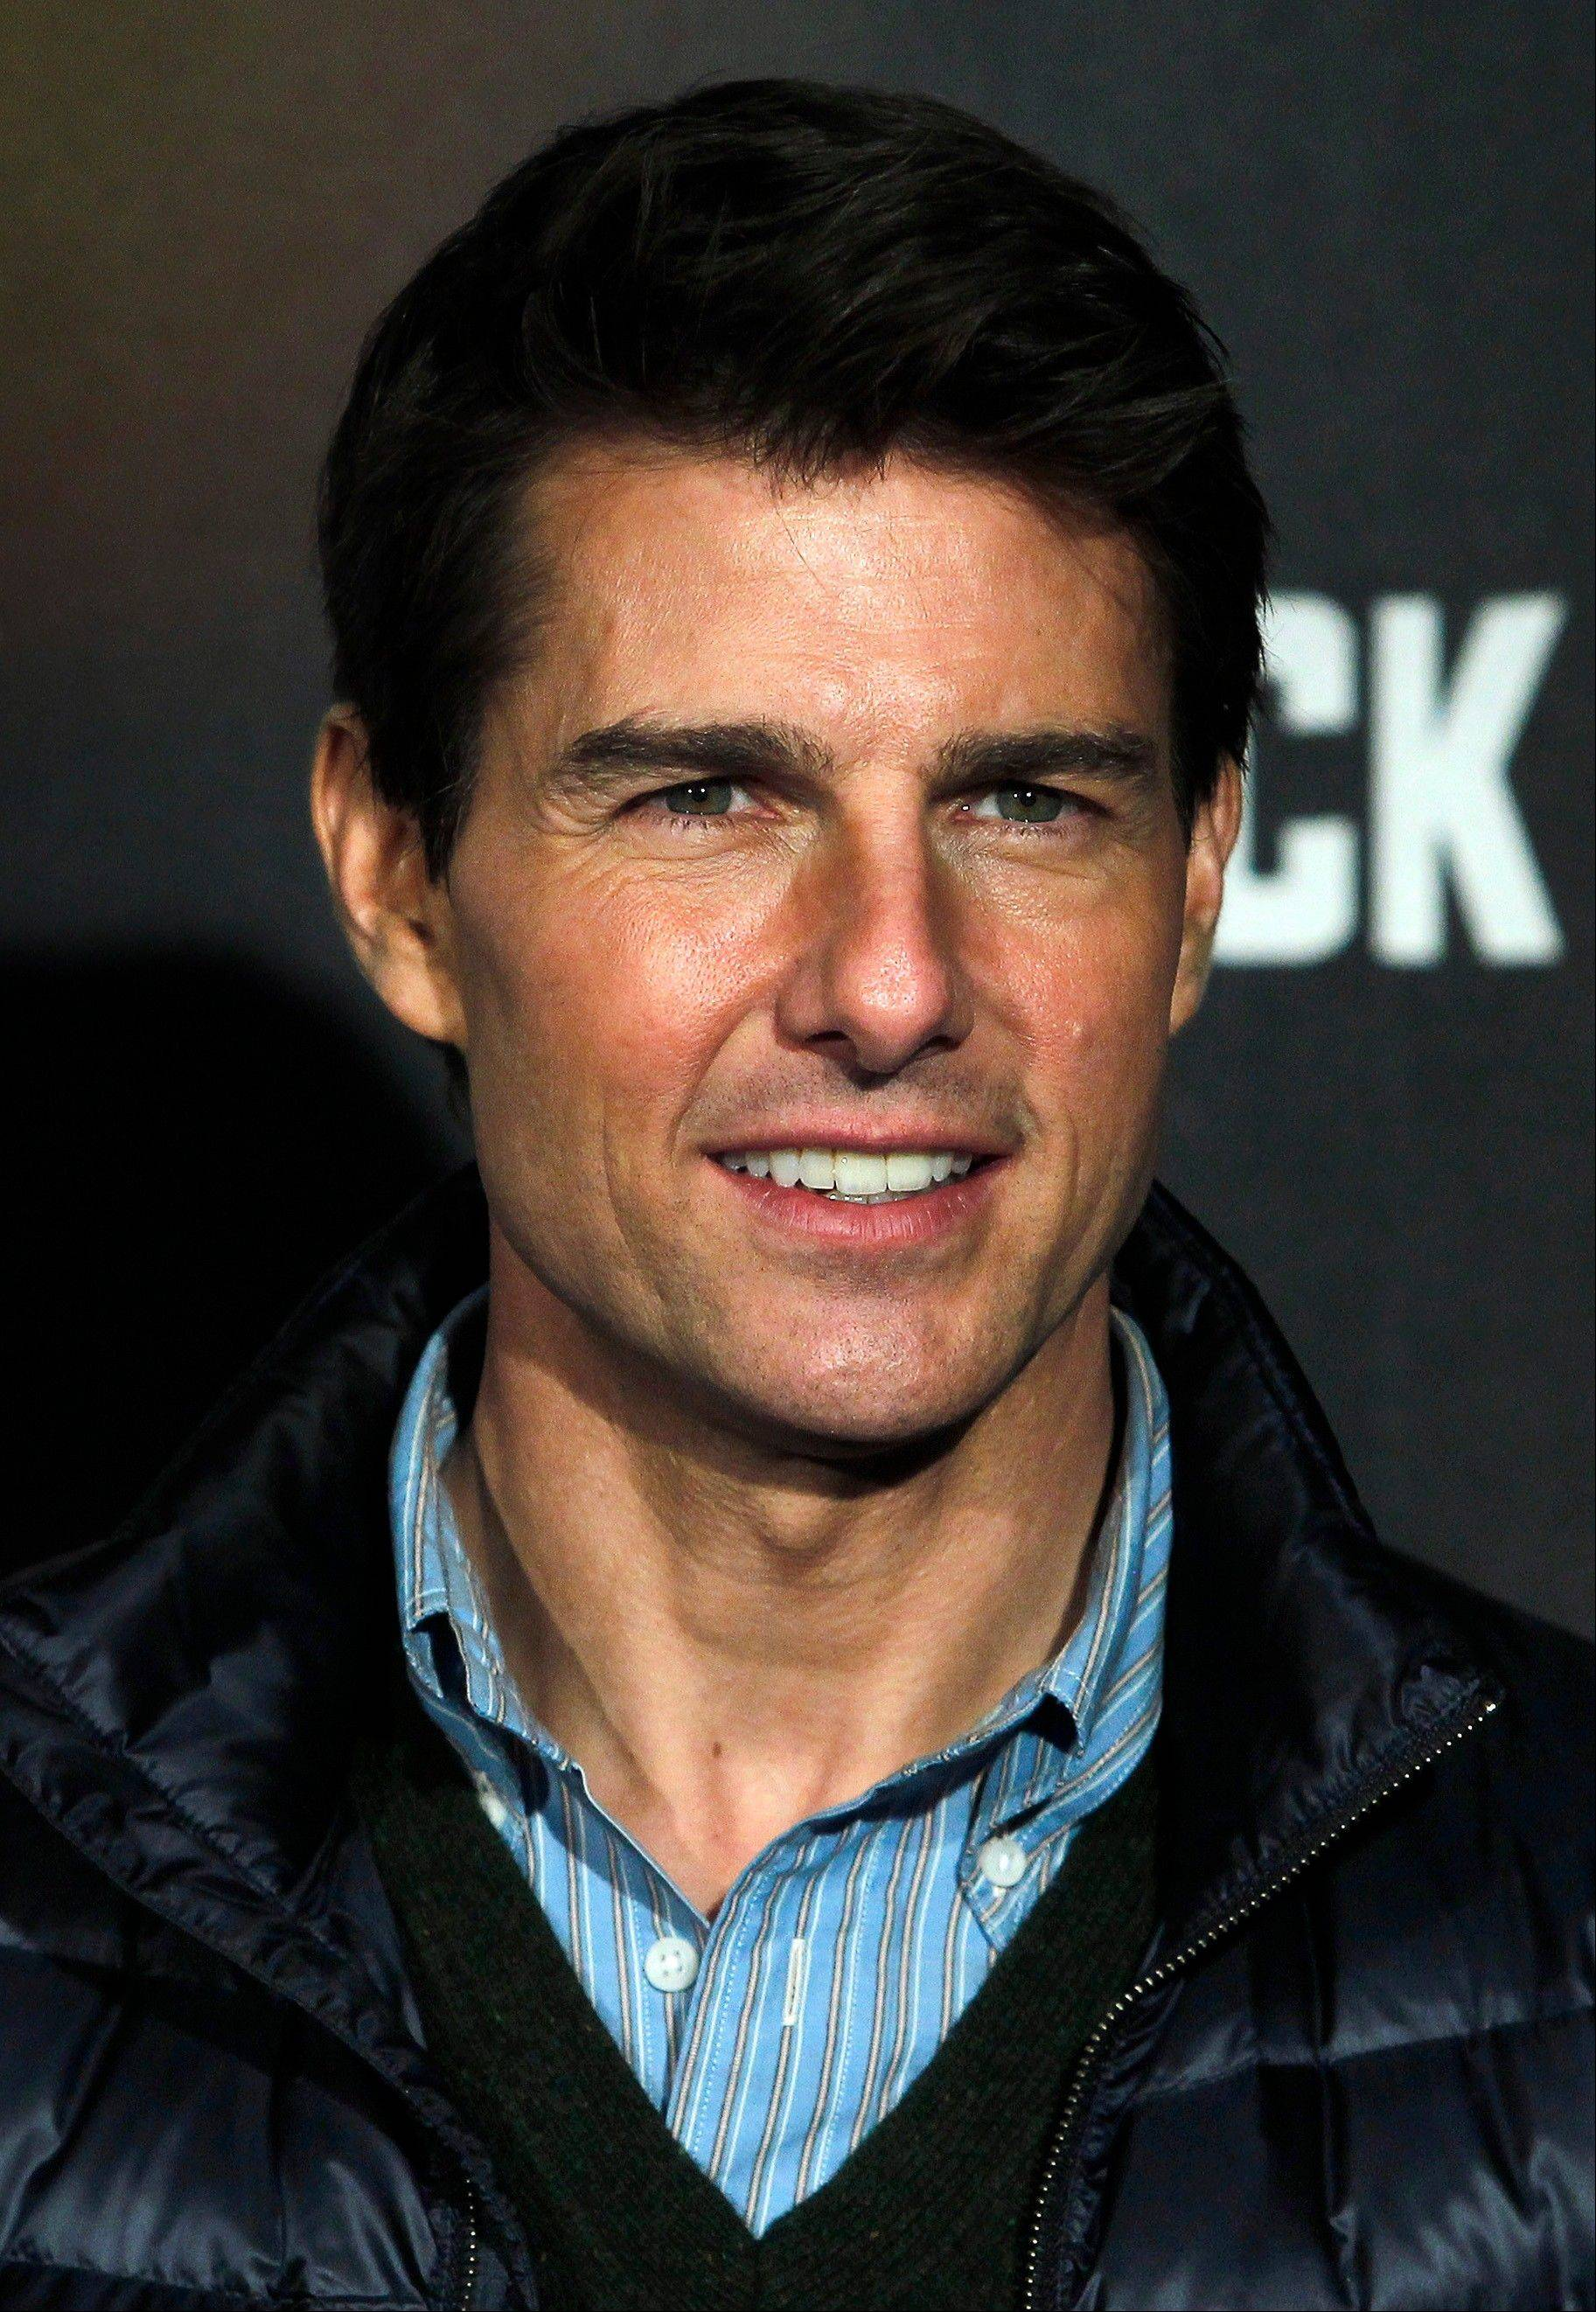 Tom Cruise is heading to Pittsburgh for a scaled-down screening of his new action movie, �Jack Reacher,� after it was postponed over the weekend because of the deadly school shooting in Connecticut.